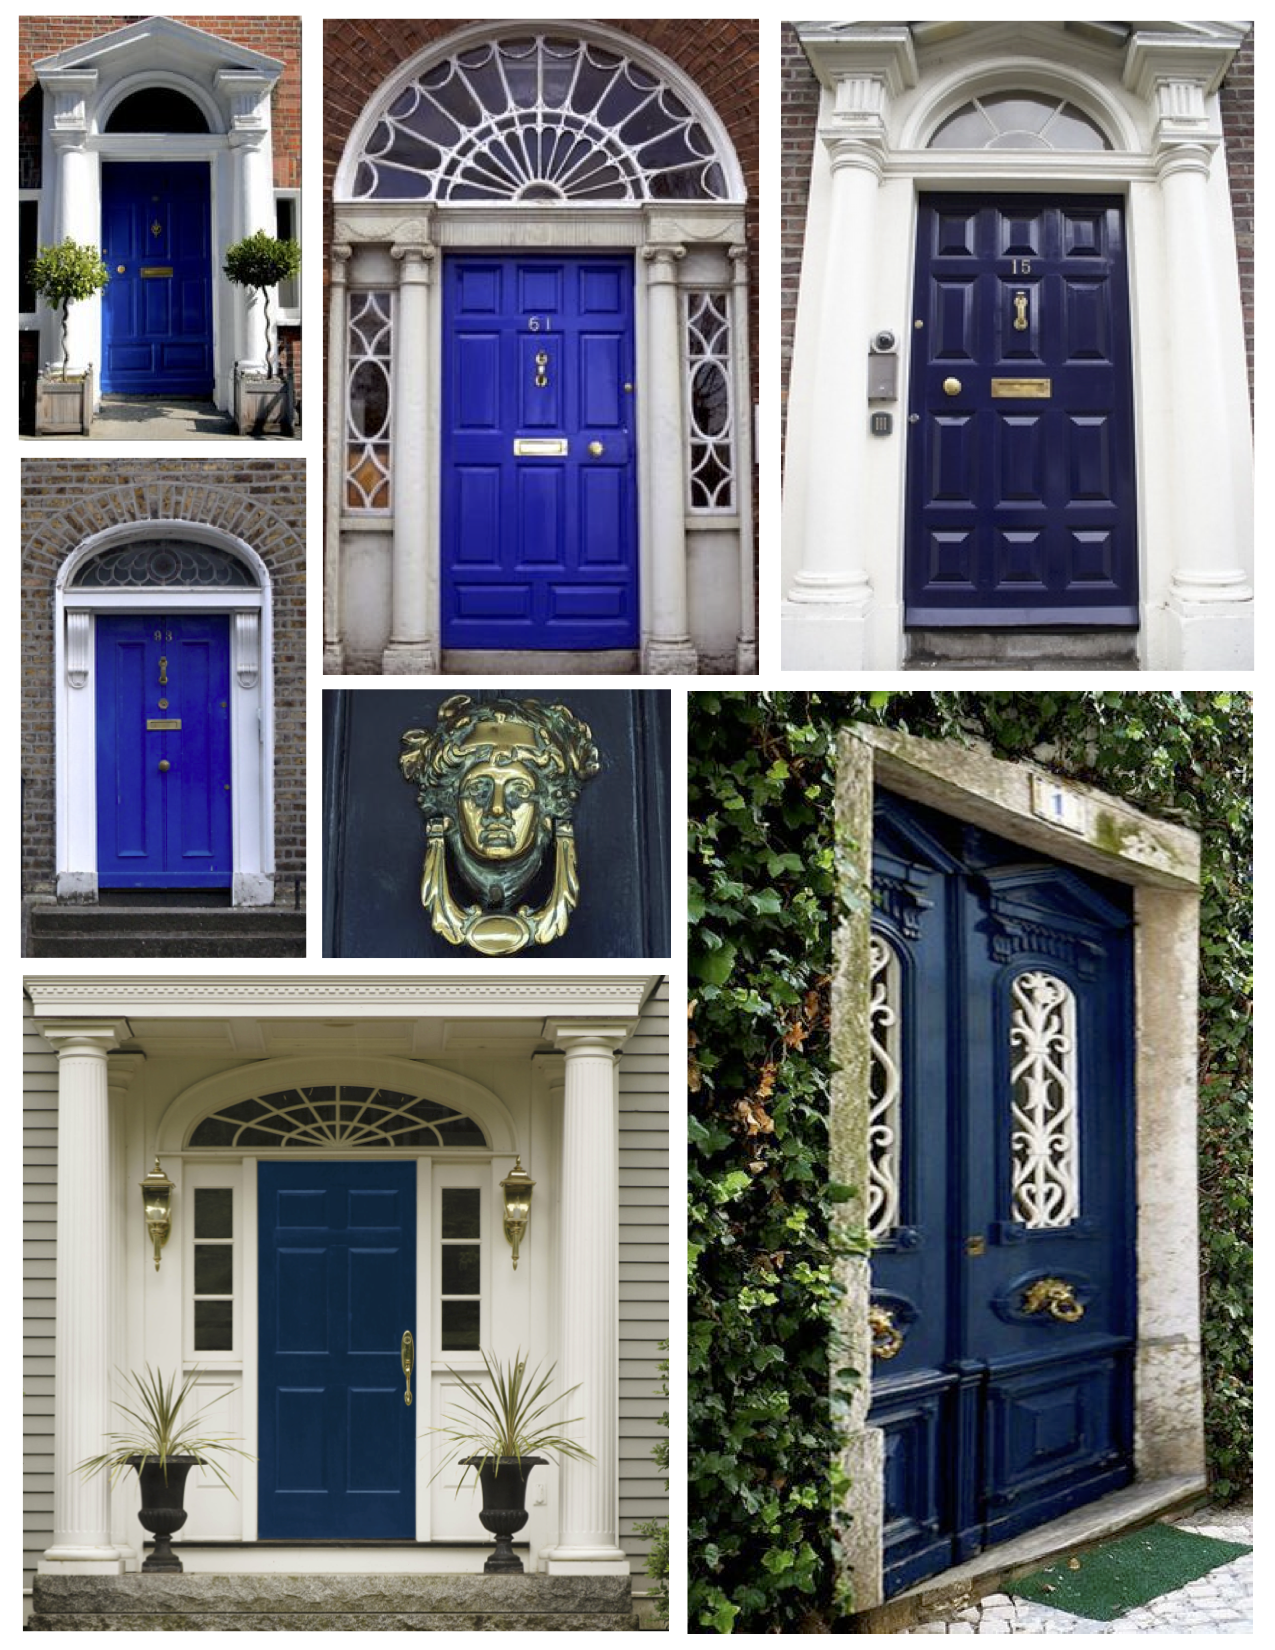 ... Dramatic \u0026 Regal The Painted Blue Exterior Door & Exterior Color Inspirations: The Regal \u0026 Brilliant Painted Blue ...